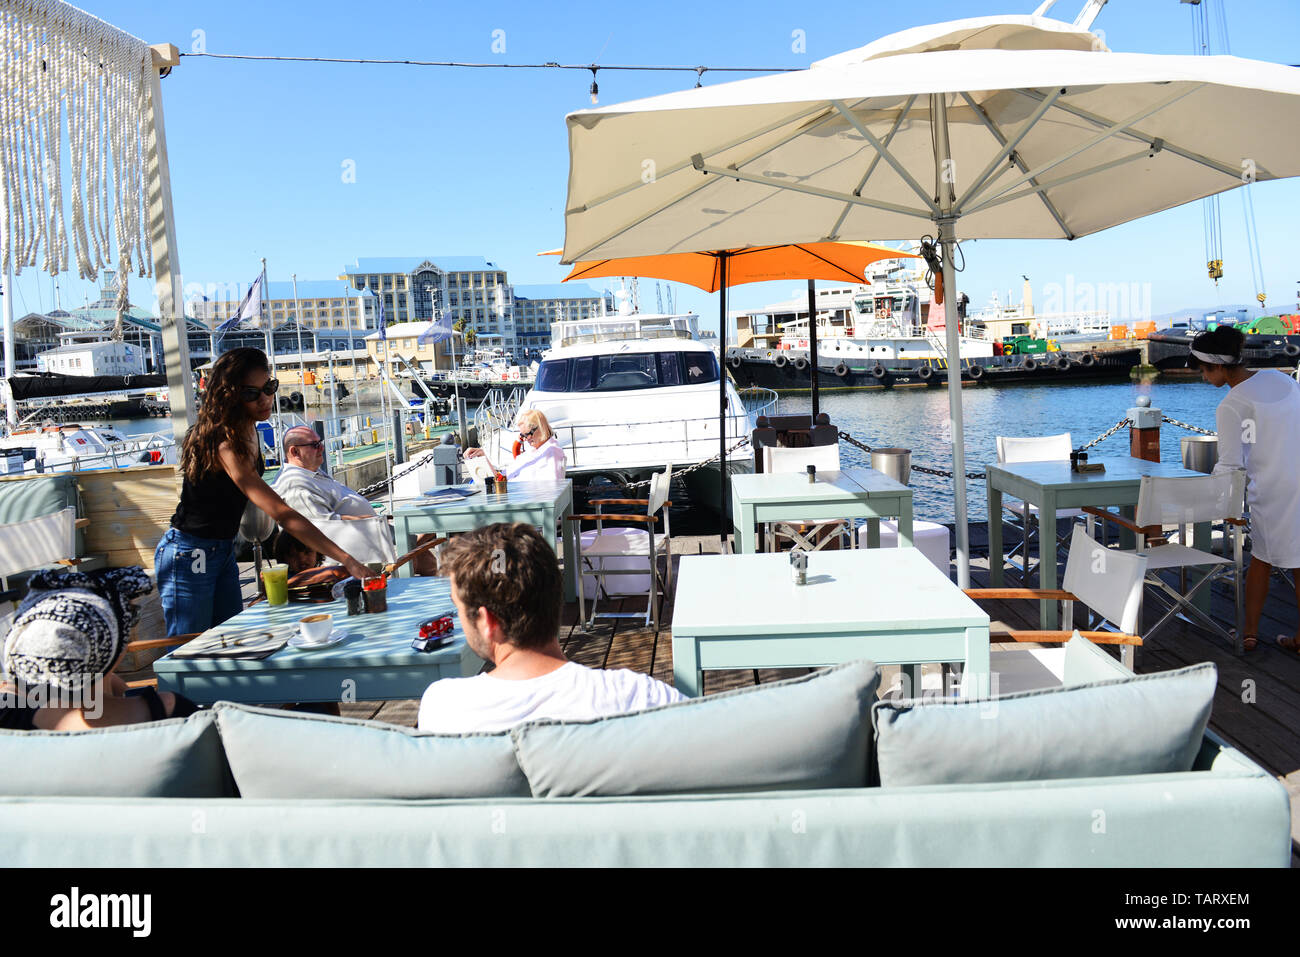 vibrant restaurants and cafes at the V&A water front area in Cape Town, South Africa. - Stock Image